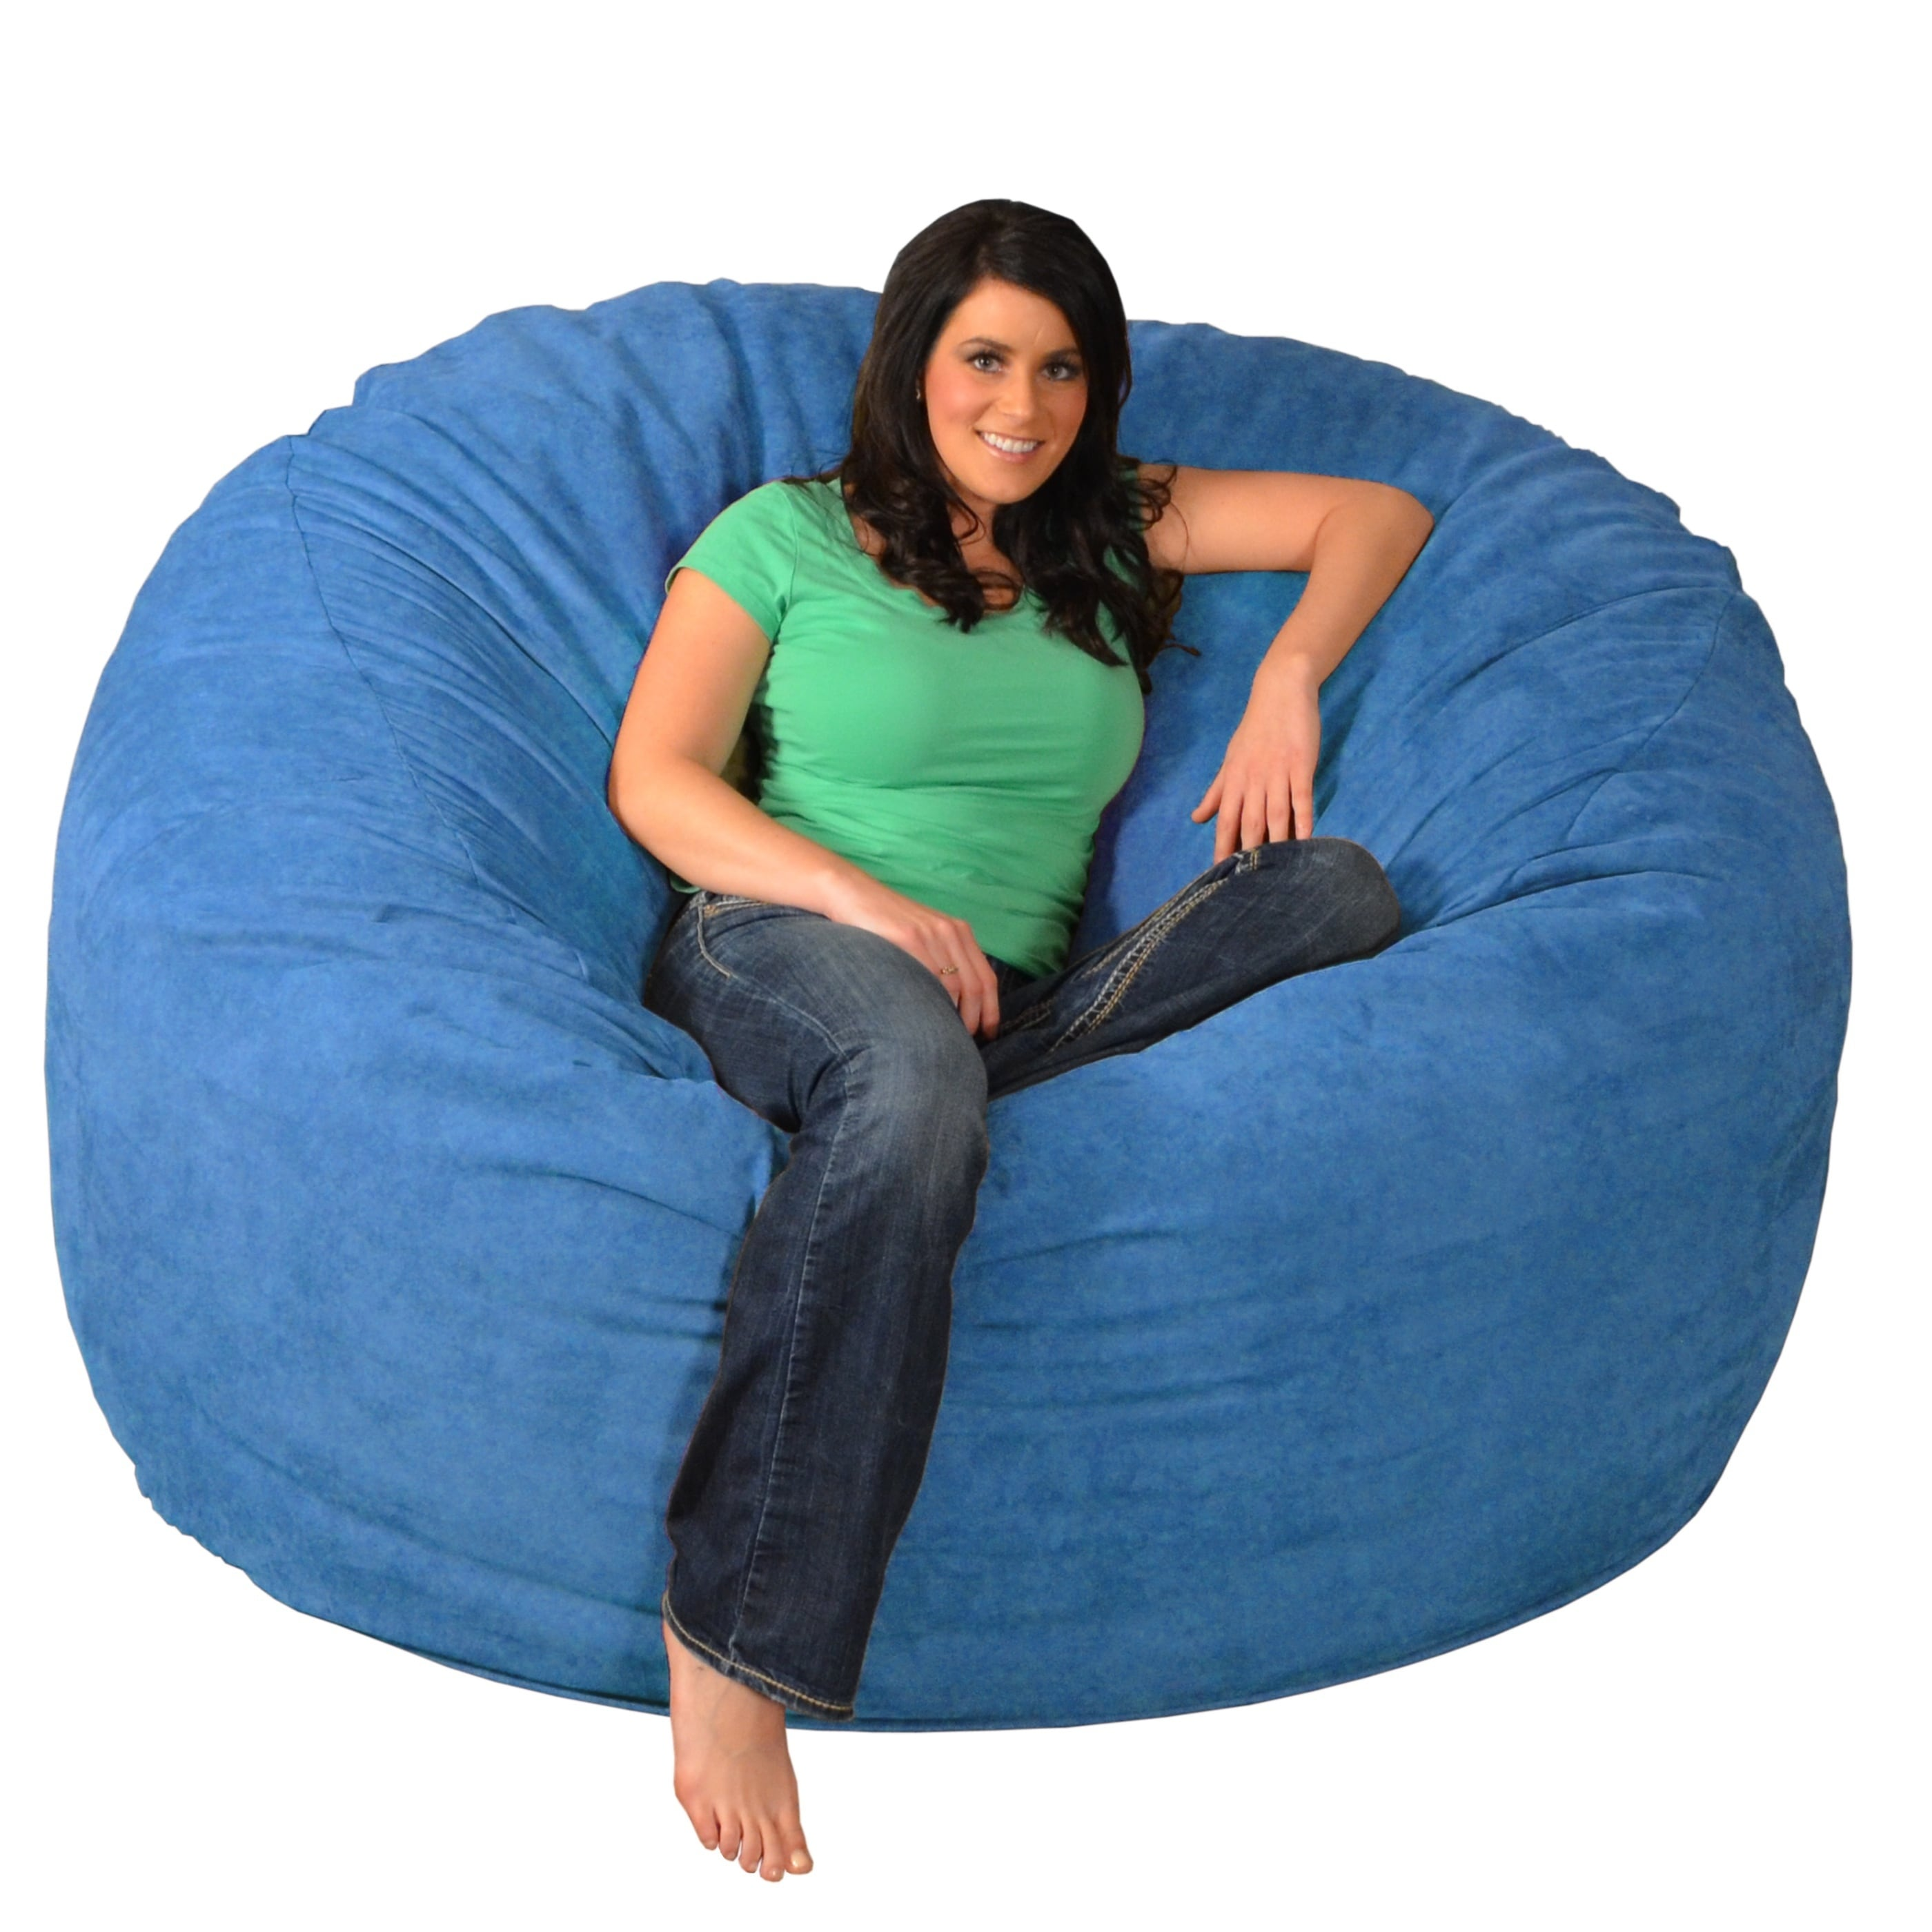 Good Giant Memory Foam Bean Bag 6 Foot Chair   Free Shipping Today   Overstock    17092312